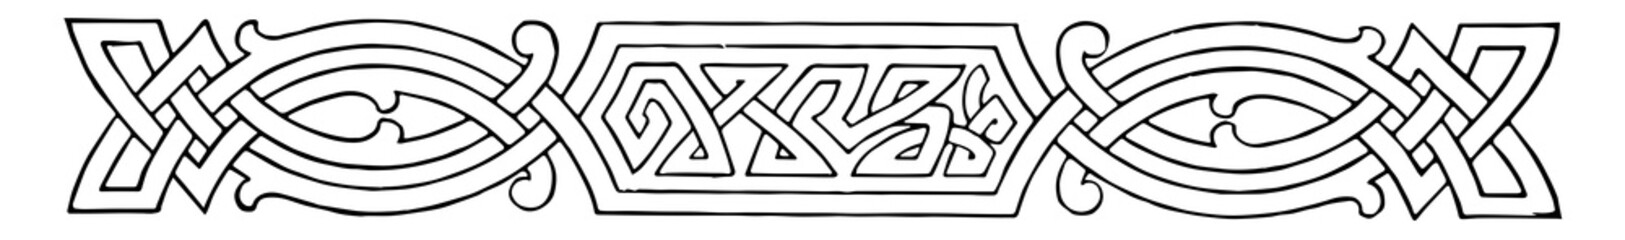 Celtic Divider is a intertwining knots pattern, vintage engraving.